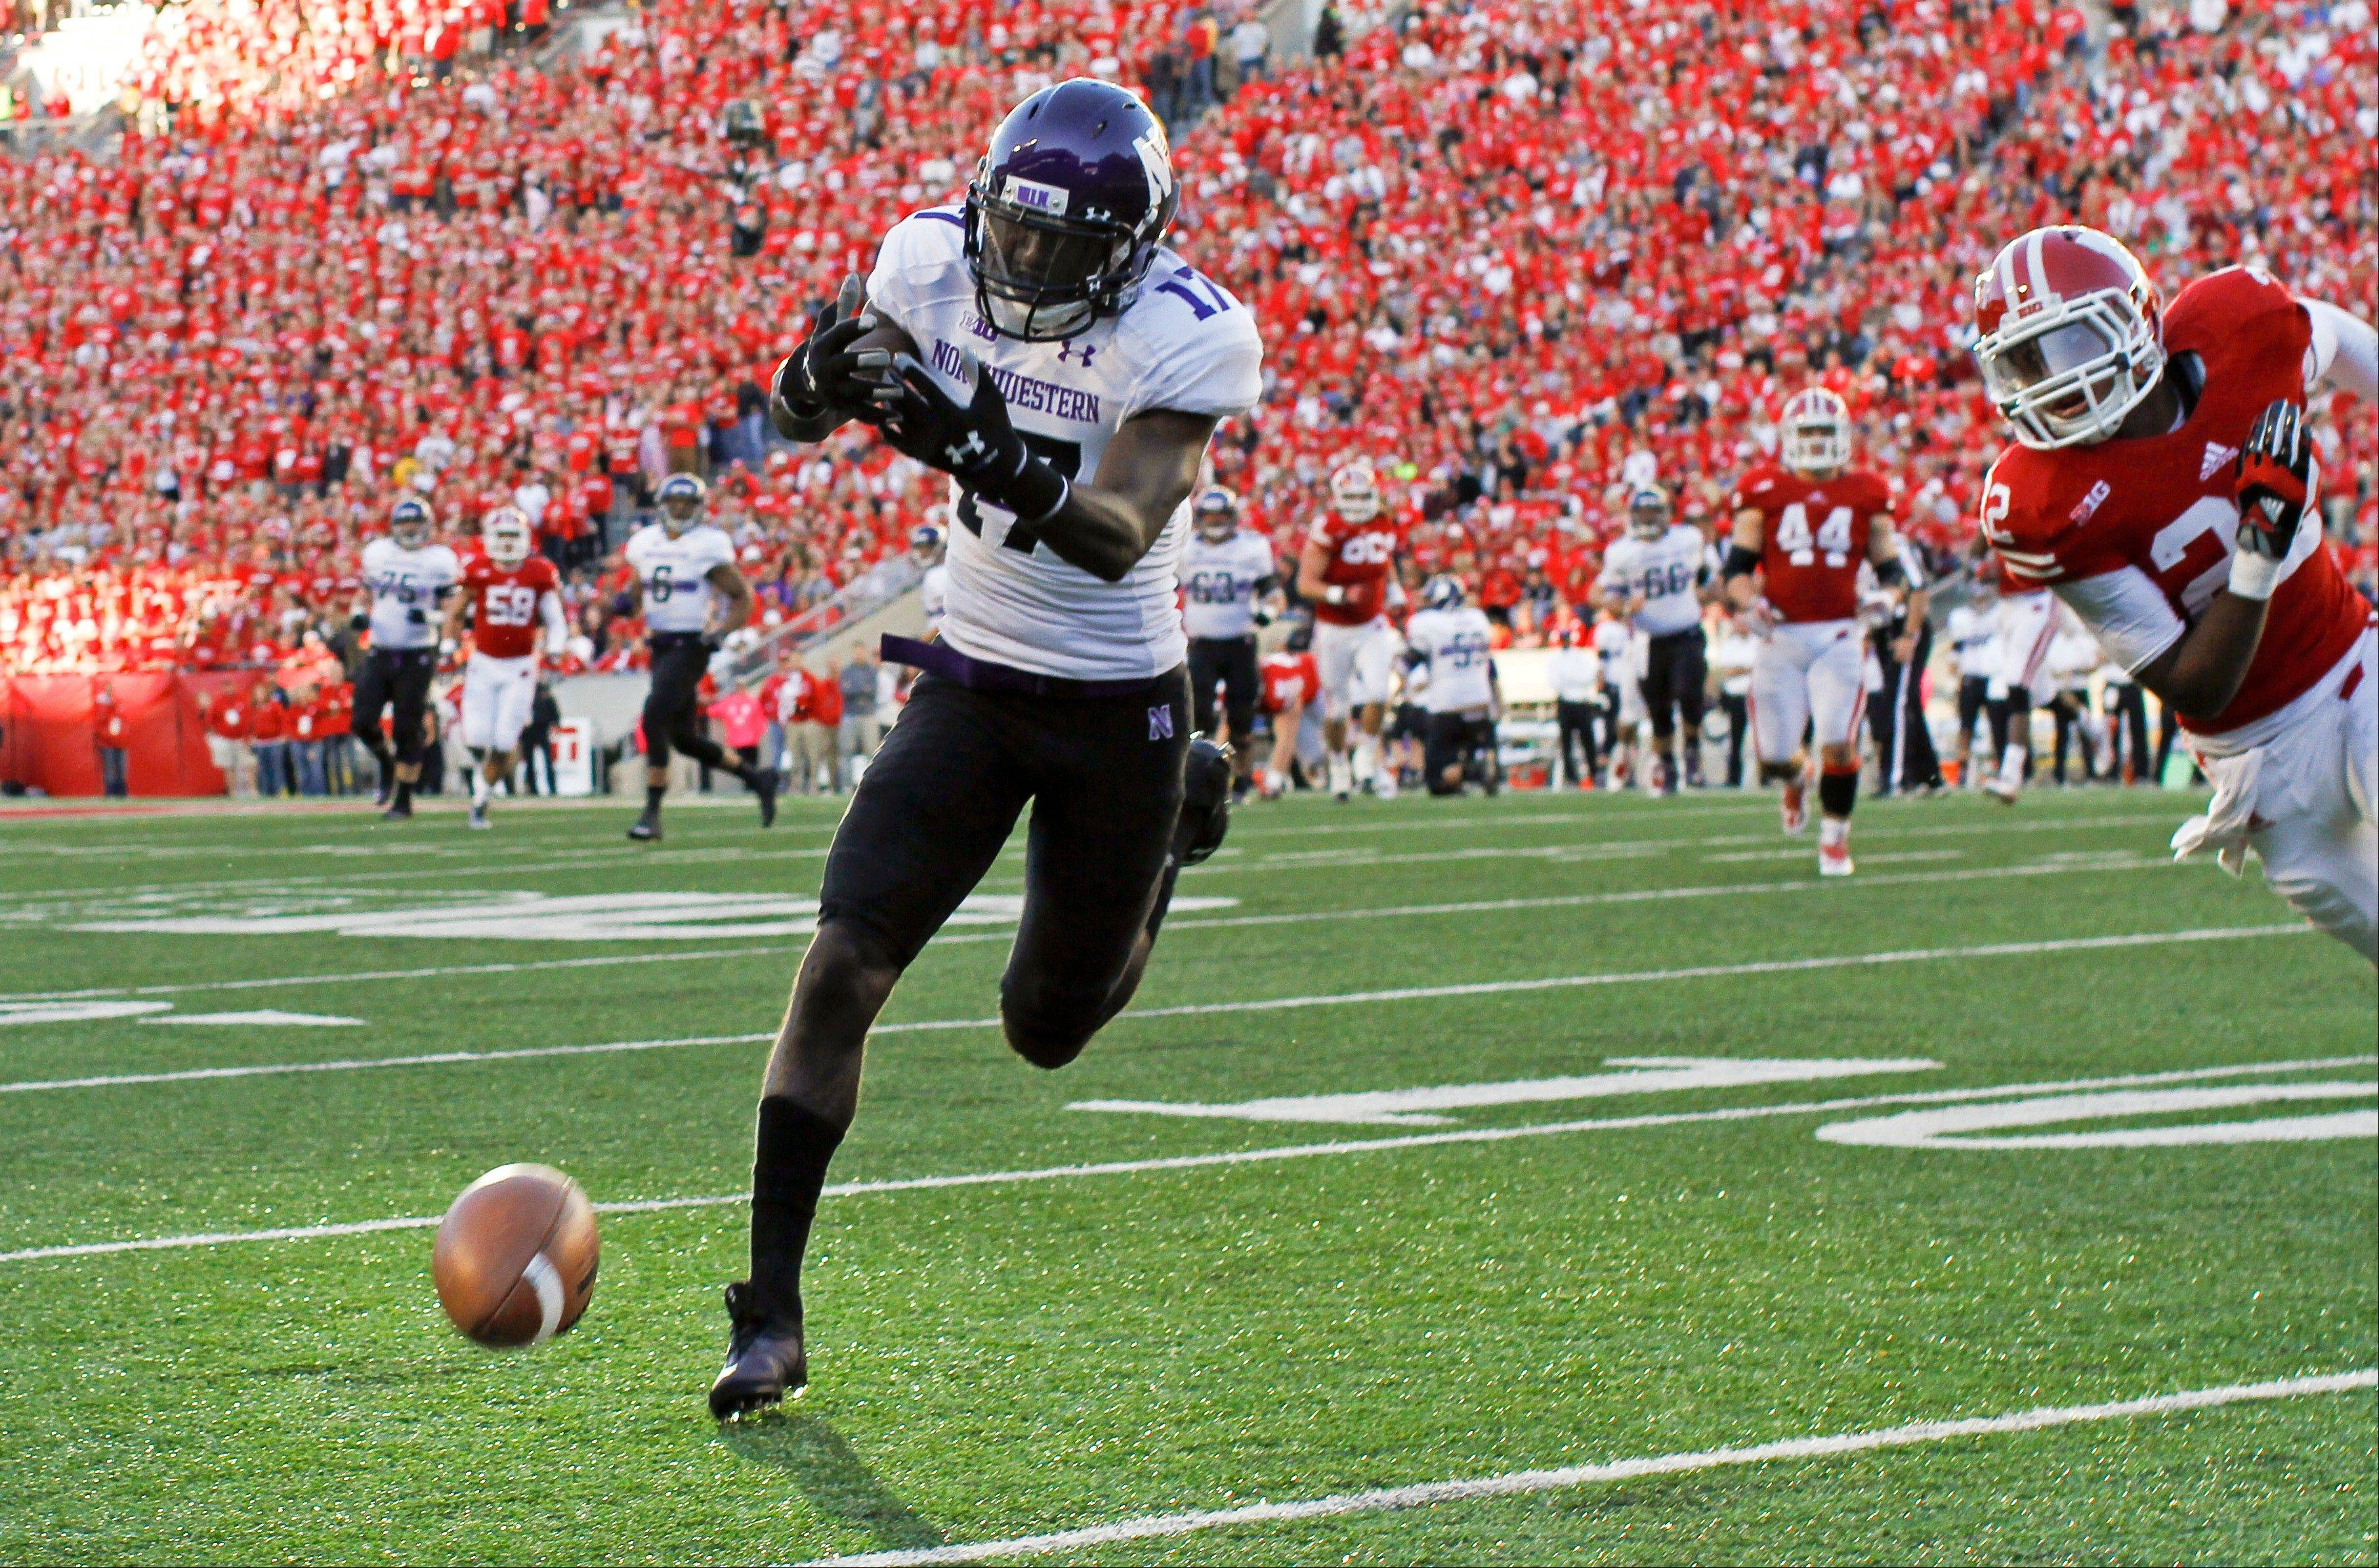 Northwestern wide receiver Rashad Lawrence misses a pass in last Saturday�s loss to Wisconsin. The Wildcats will look to end a two-game slide when Minnesota comes to Evanston this weekend.